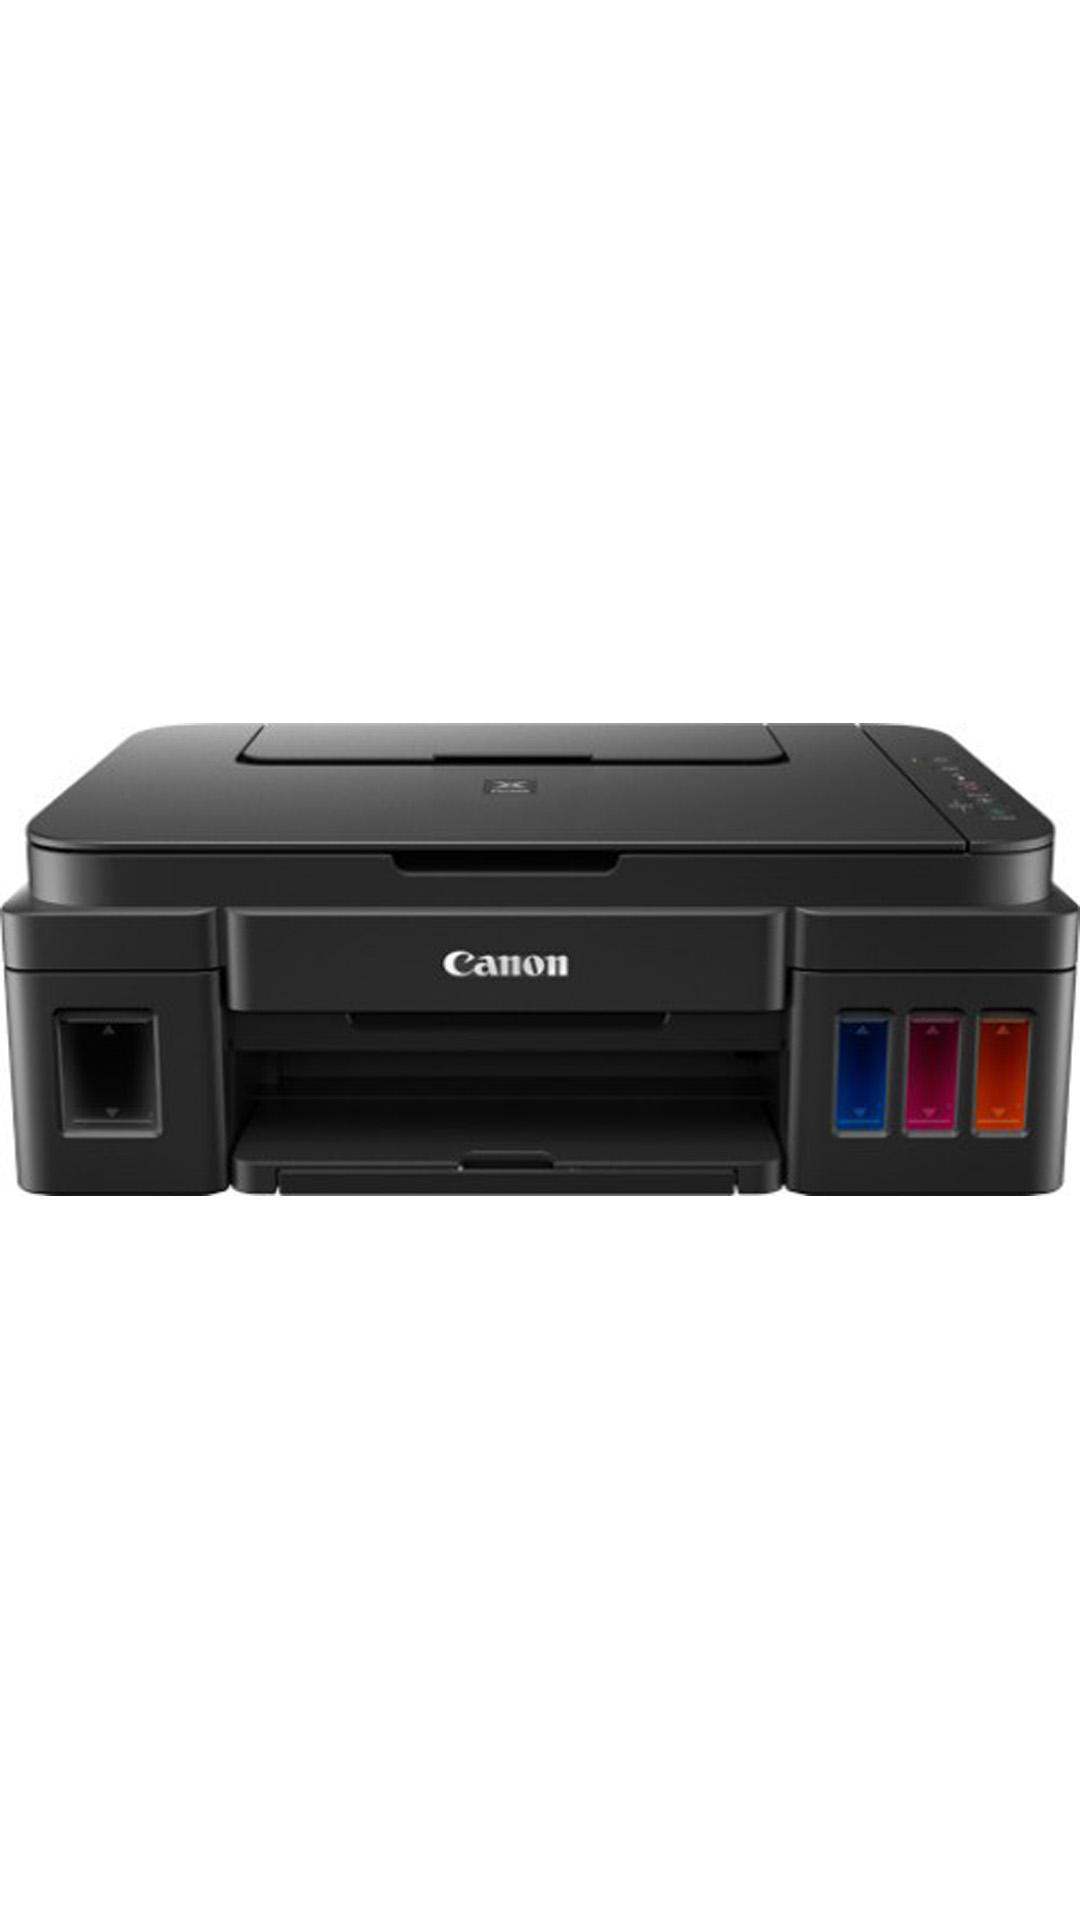 Canon PIXMA G2000 Multi-function Printer (Black)